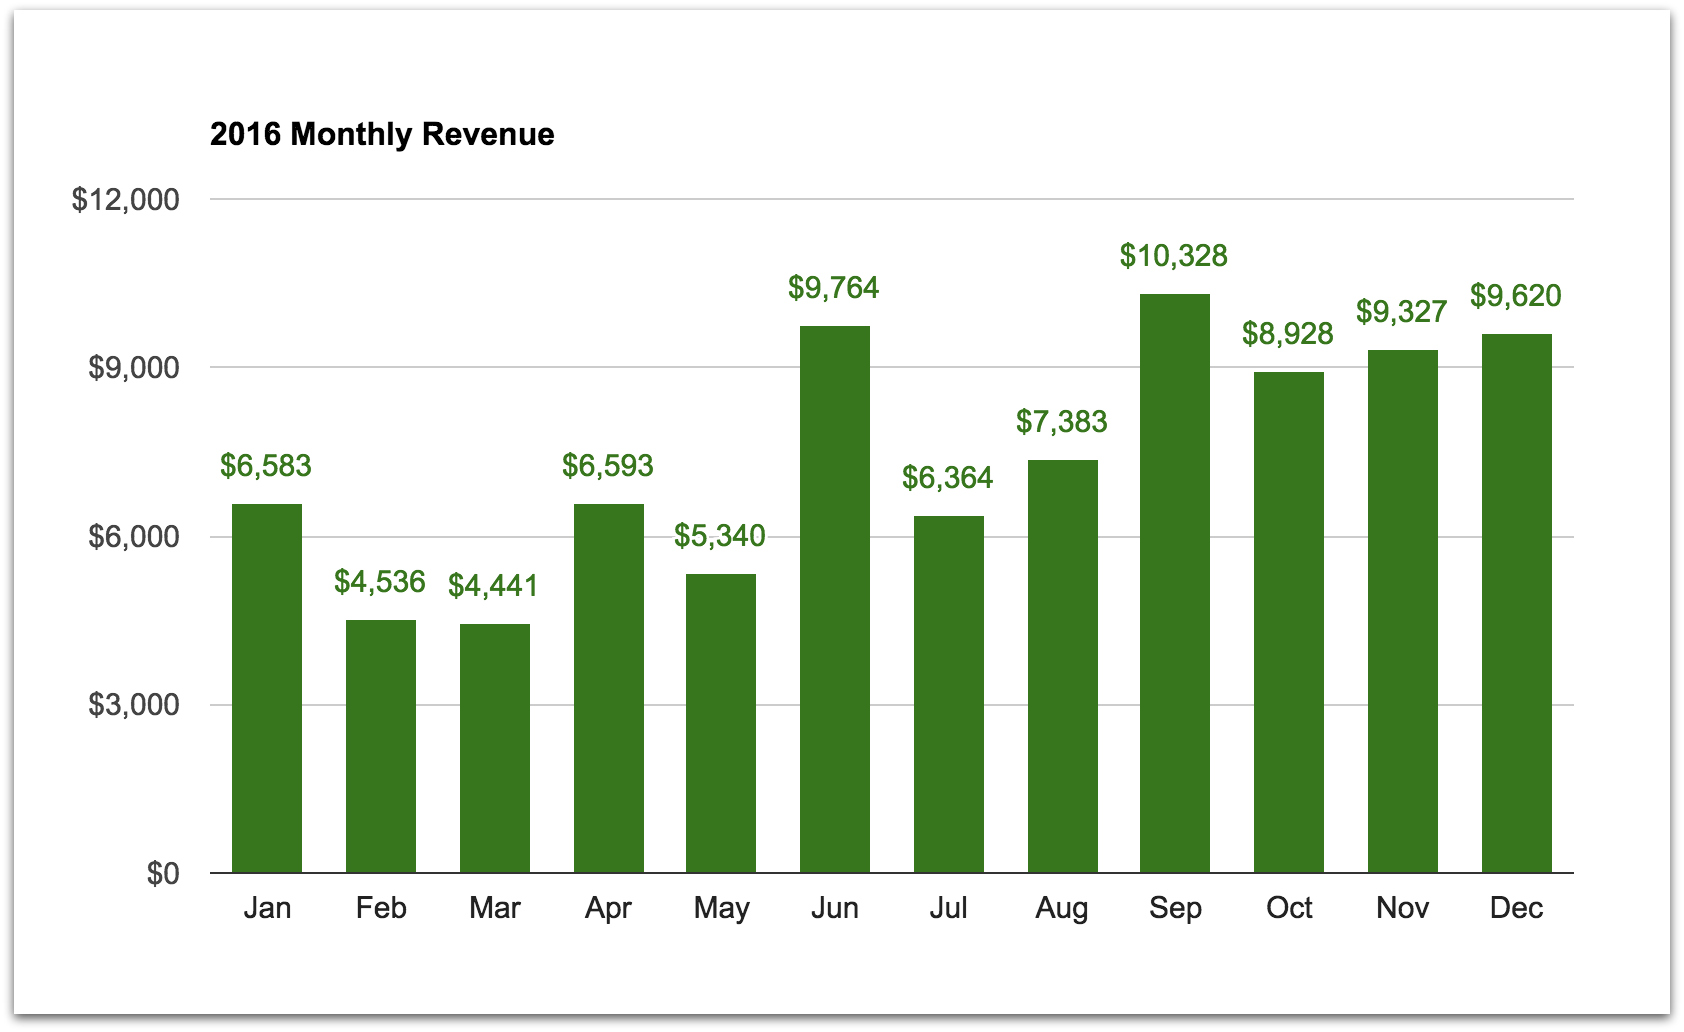 2016 monthly revenue